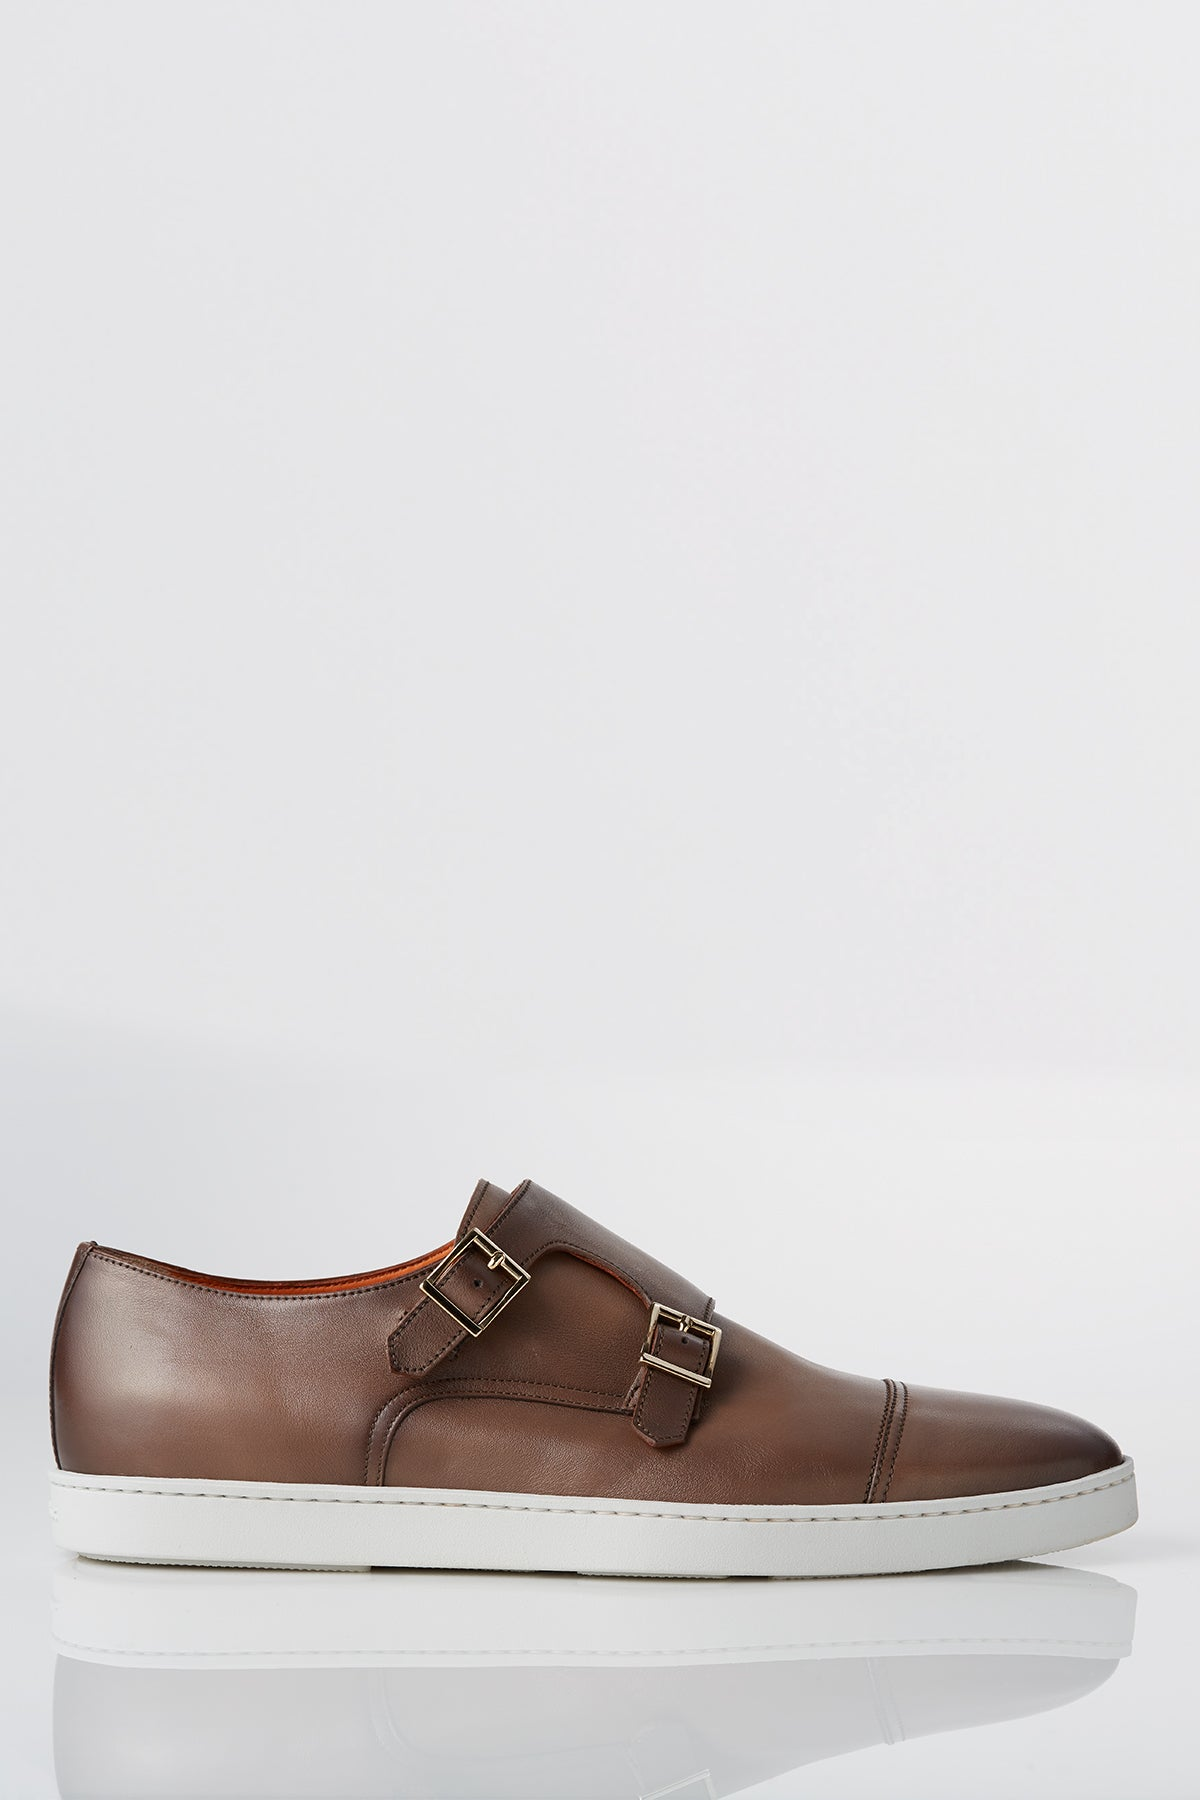 Santoni Freemont Double Buckle Monk-strap Sneaker in Beige Brown